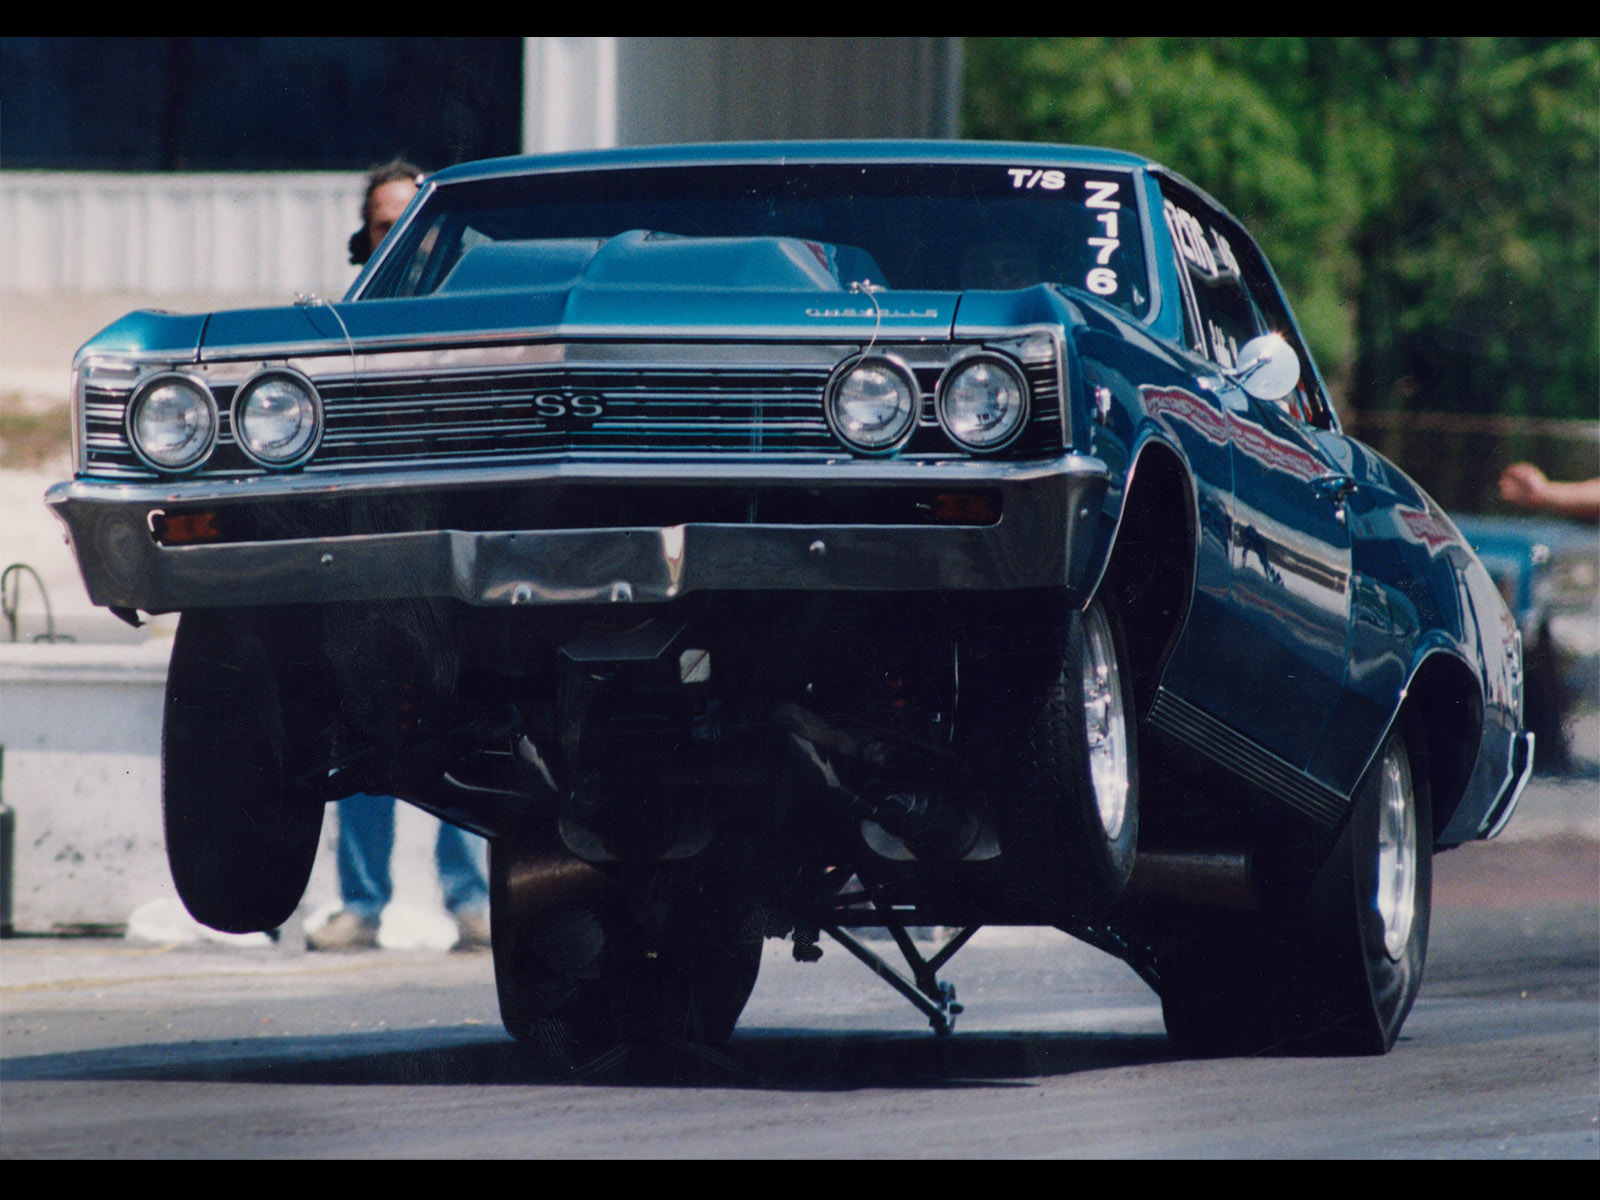 Free download high quality drag racing wallpaper num 6 for Wallpaper drag race motor